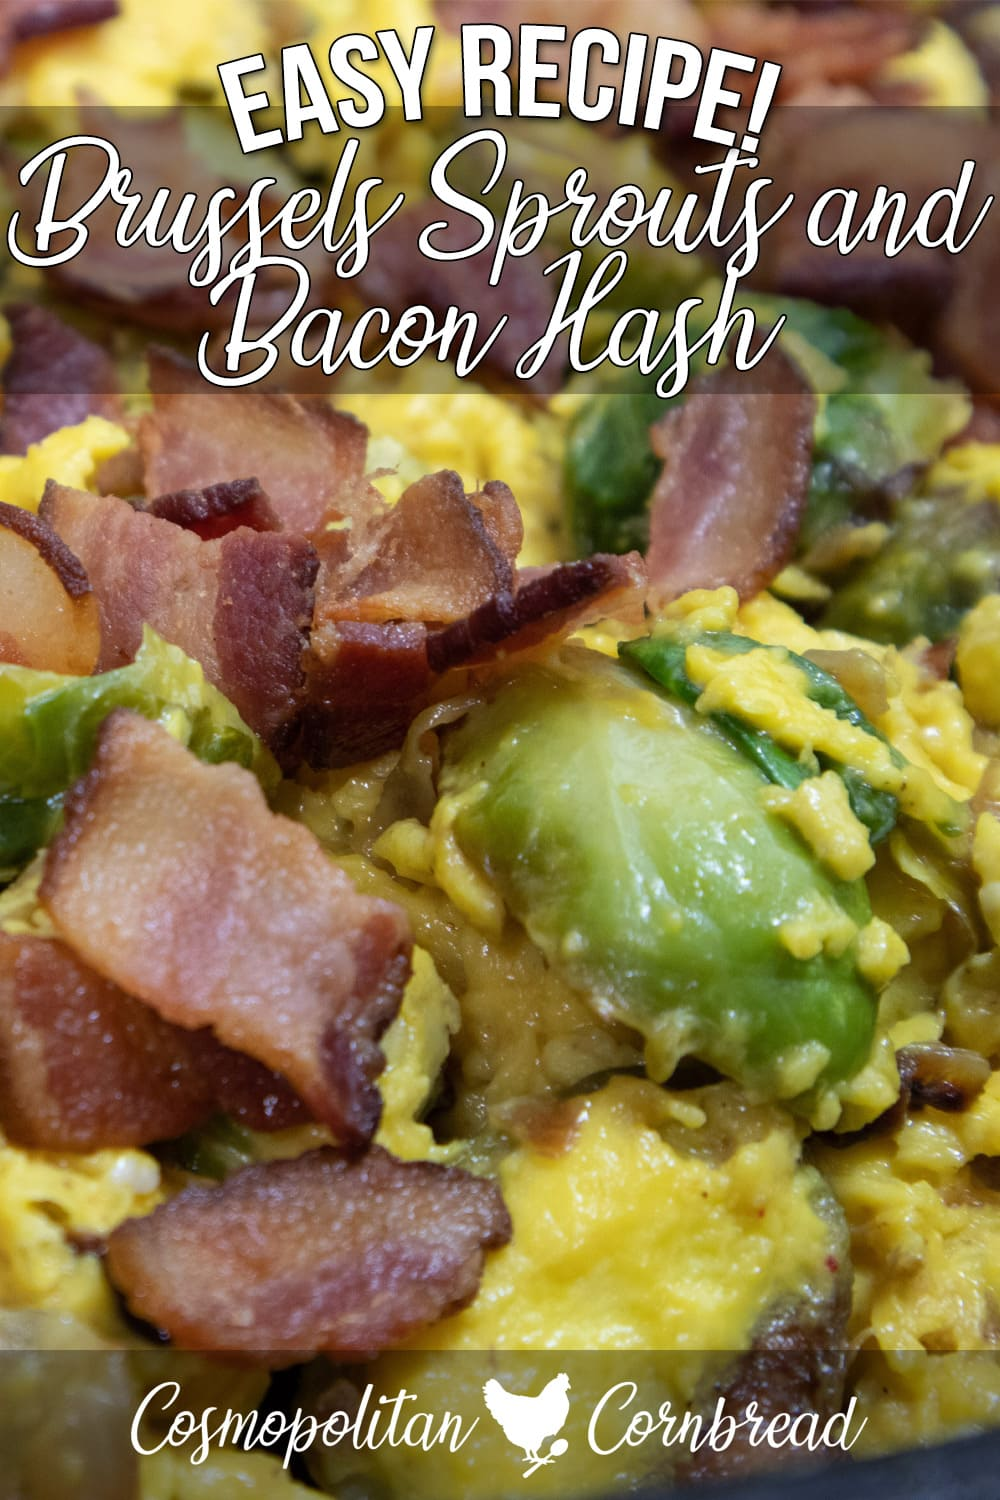 This simple Brussels sprouts and bacon hash dish is packed with flavor and perfect for an easy supper, or weekend brunch.